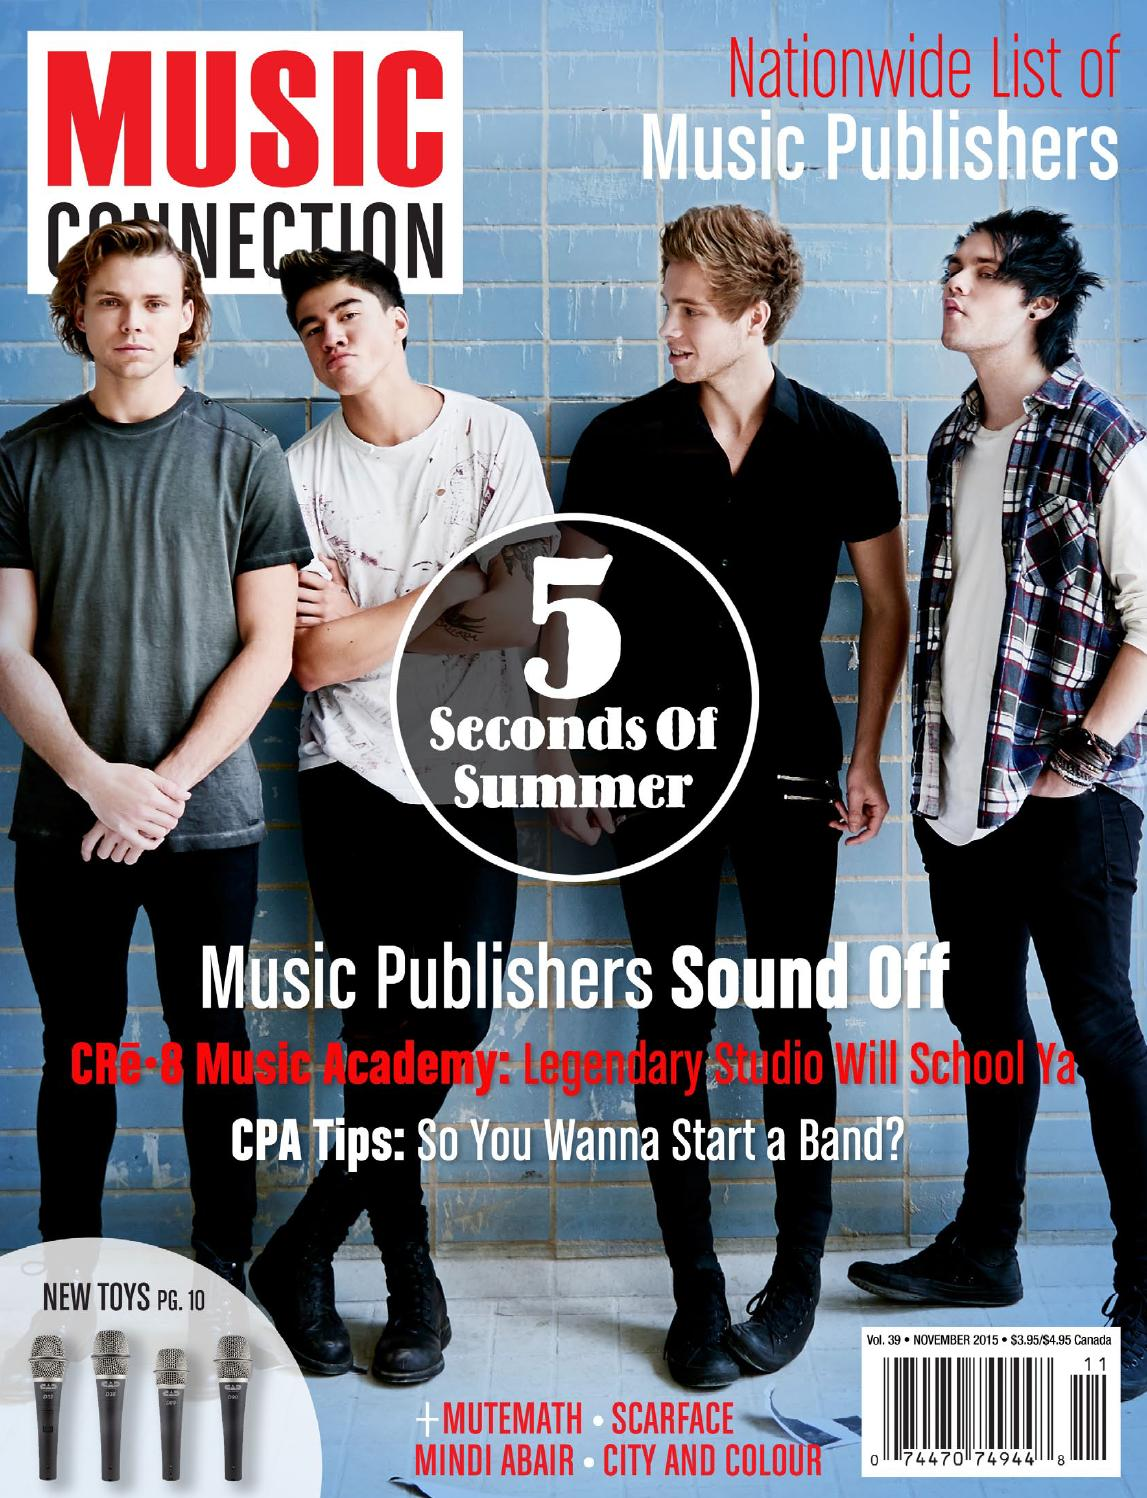 cdec1d91877 Music Connection November 2015 by Music Connection - issuu